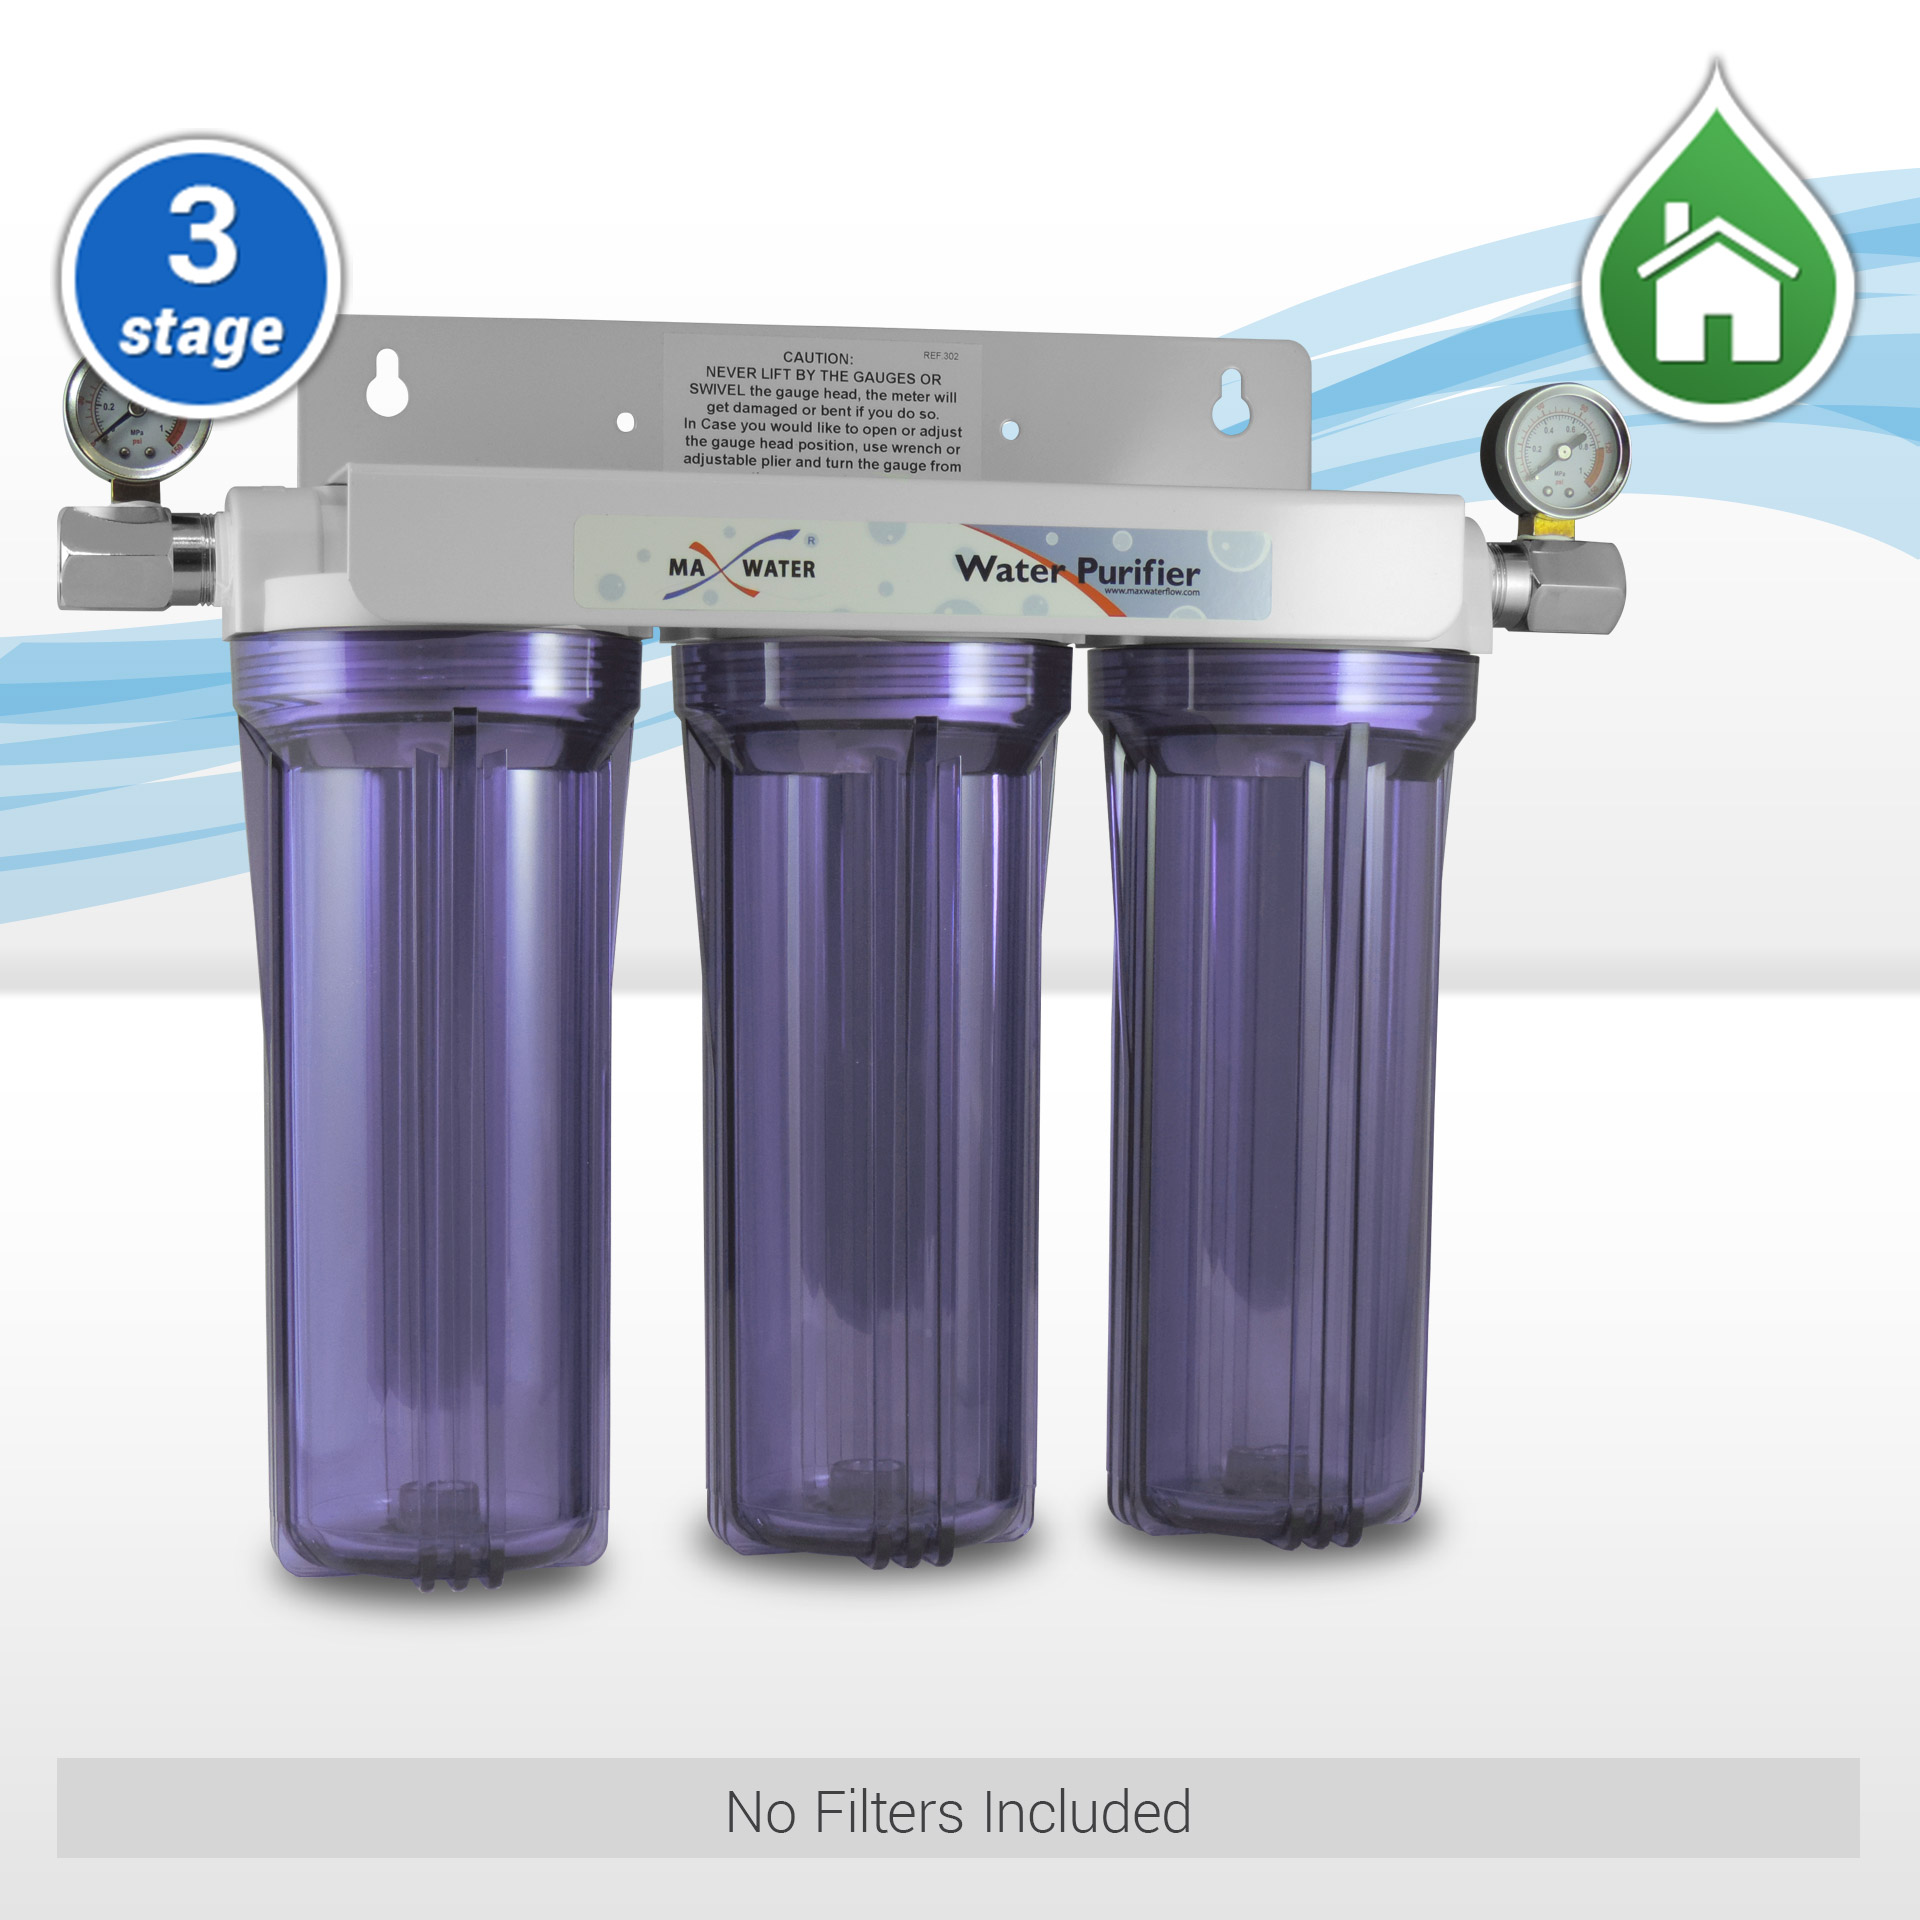 3 Stage 10 Standard Whole House Water Filtration System W